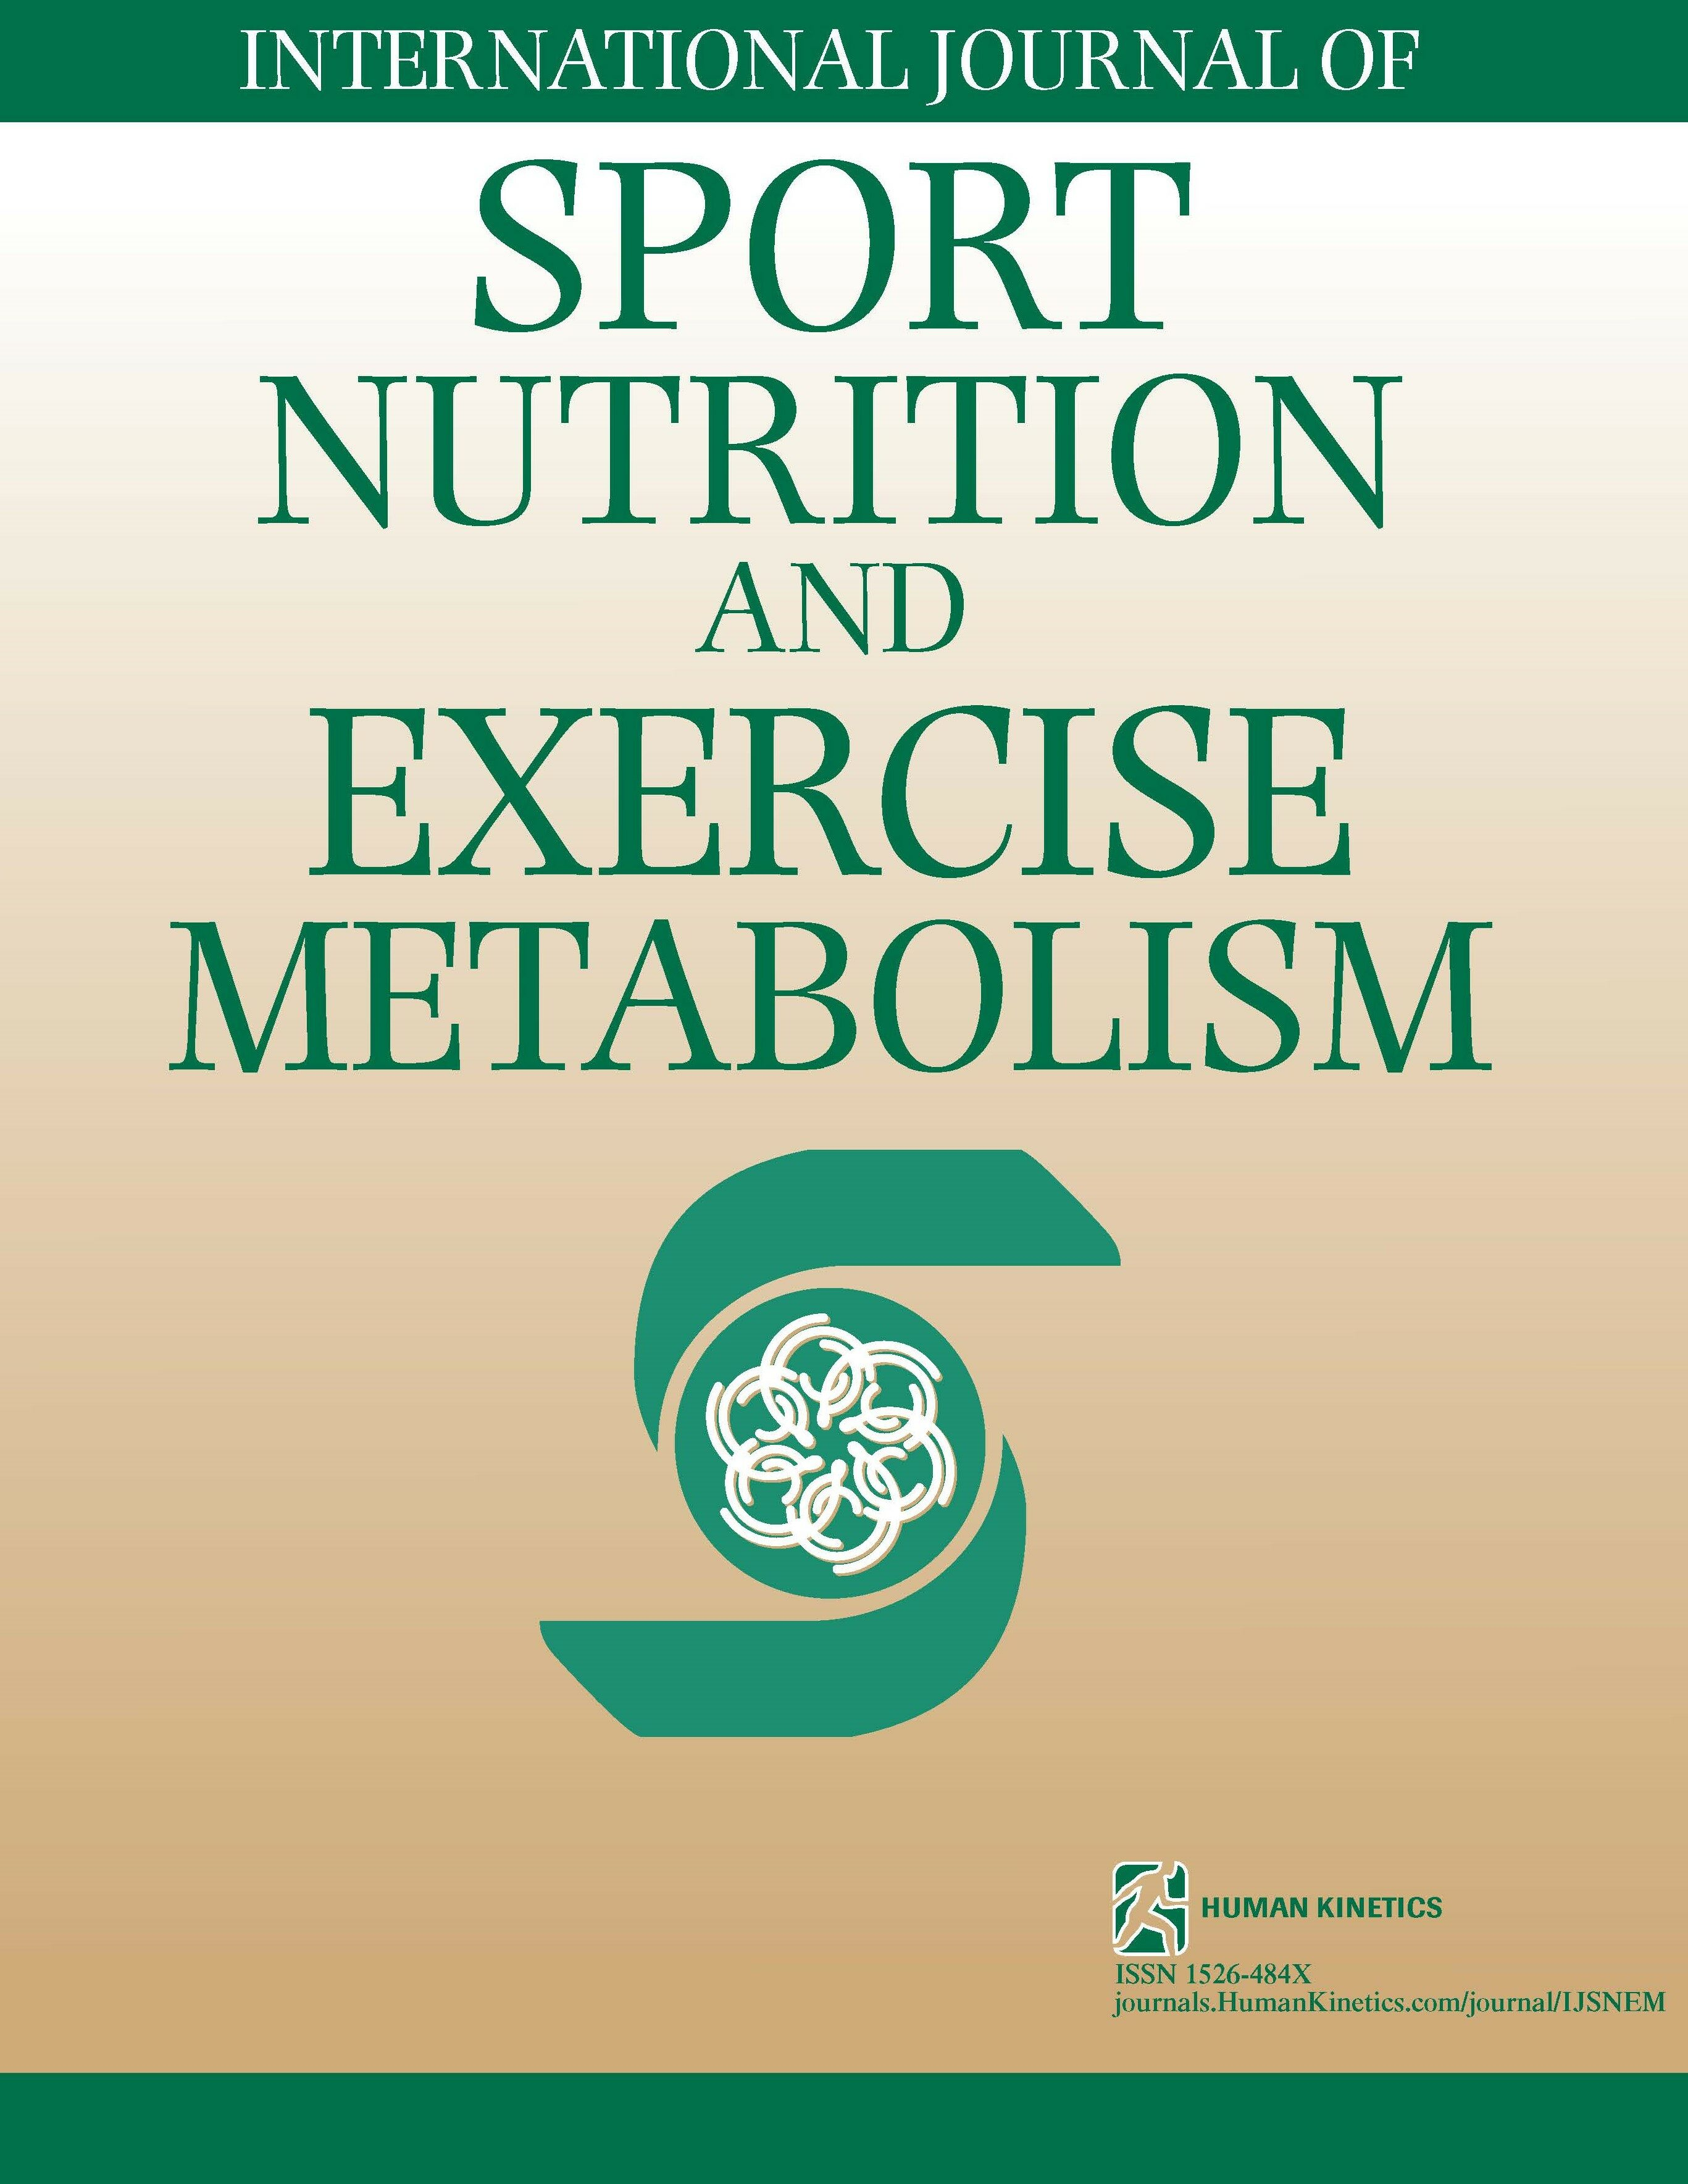 Athletes And Supplements Prevalence And Perspectives In International Journal Of Sport Nutrition And Exercise Metabolism Volume 28 Issue 2 2018